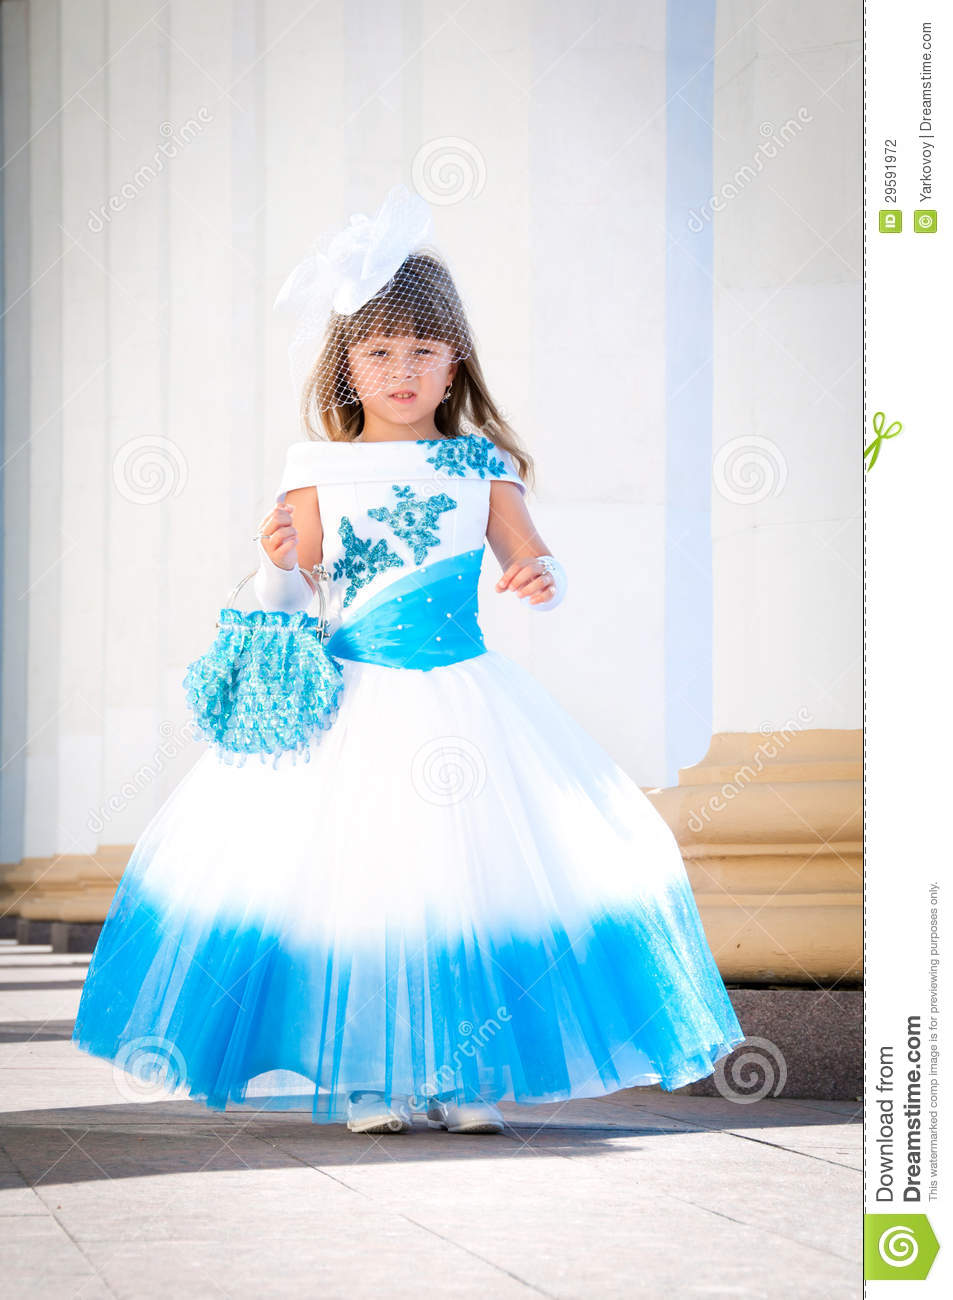 Little bride a girl in a lush white and blue wedding dress stock a girl in a lush white and blue wedding dress bridesmaid elegant ombrellifo Image collections